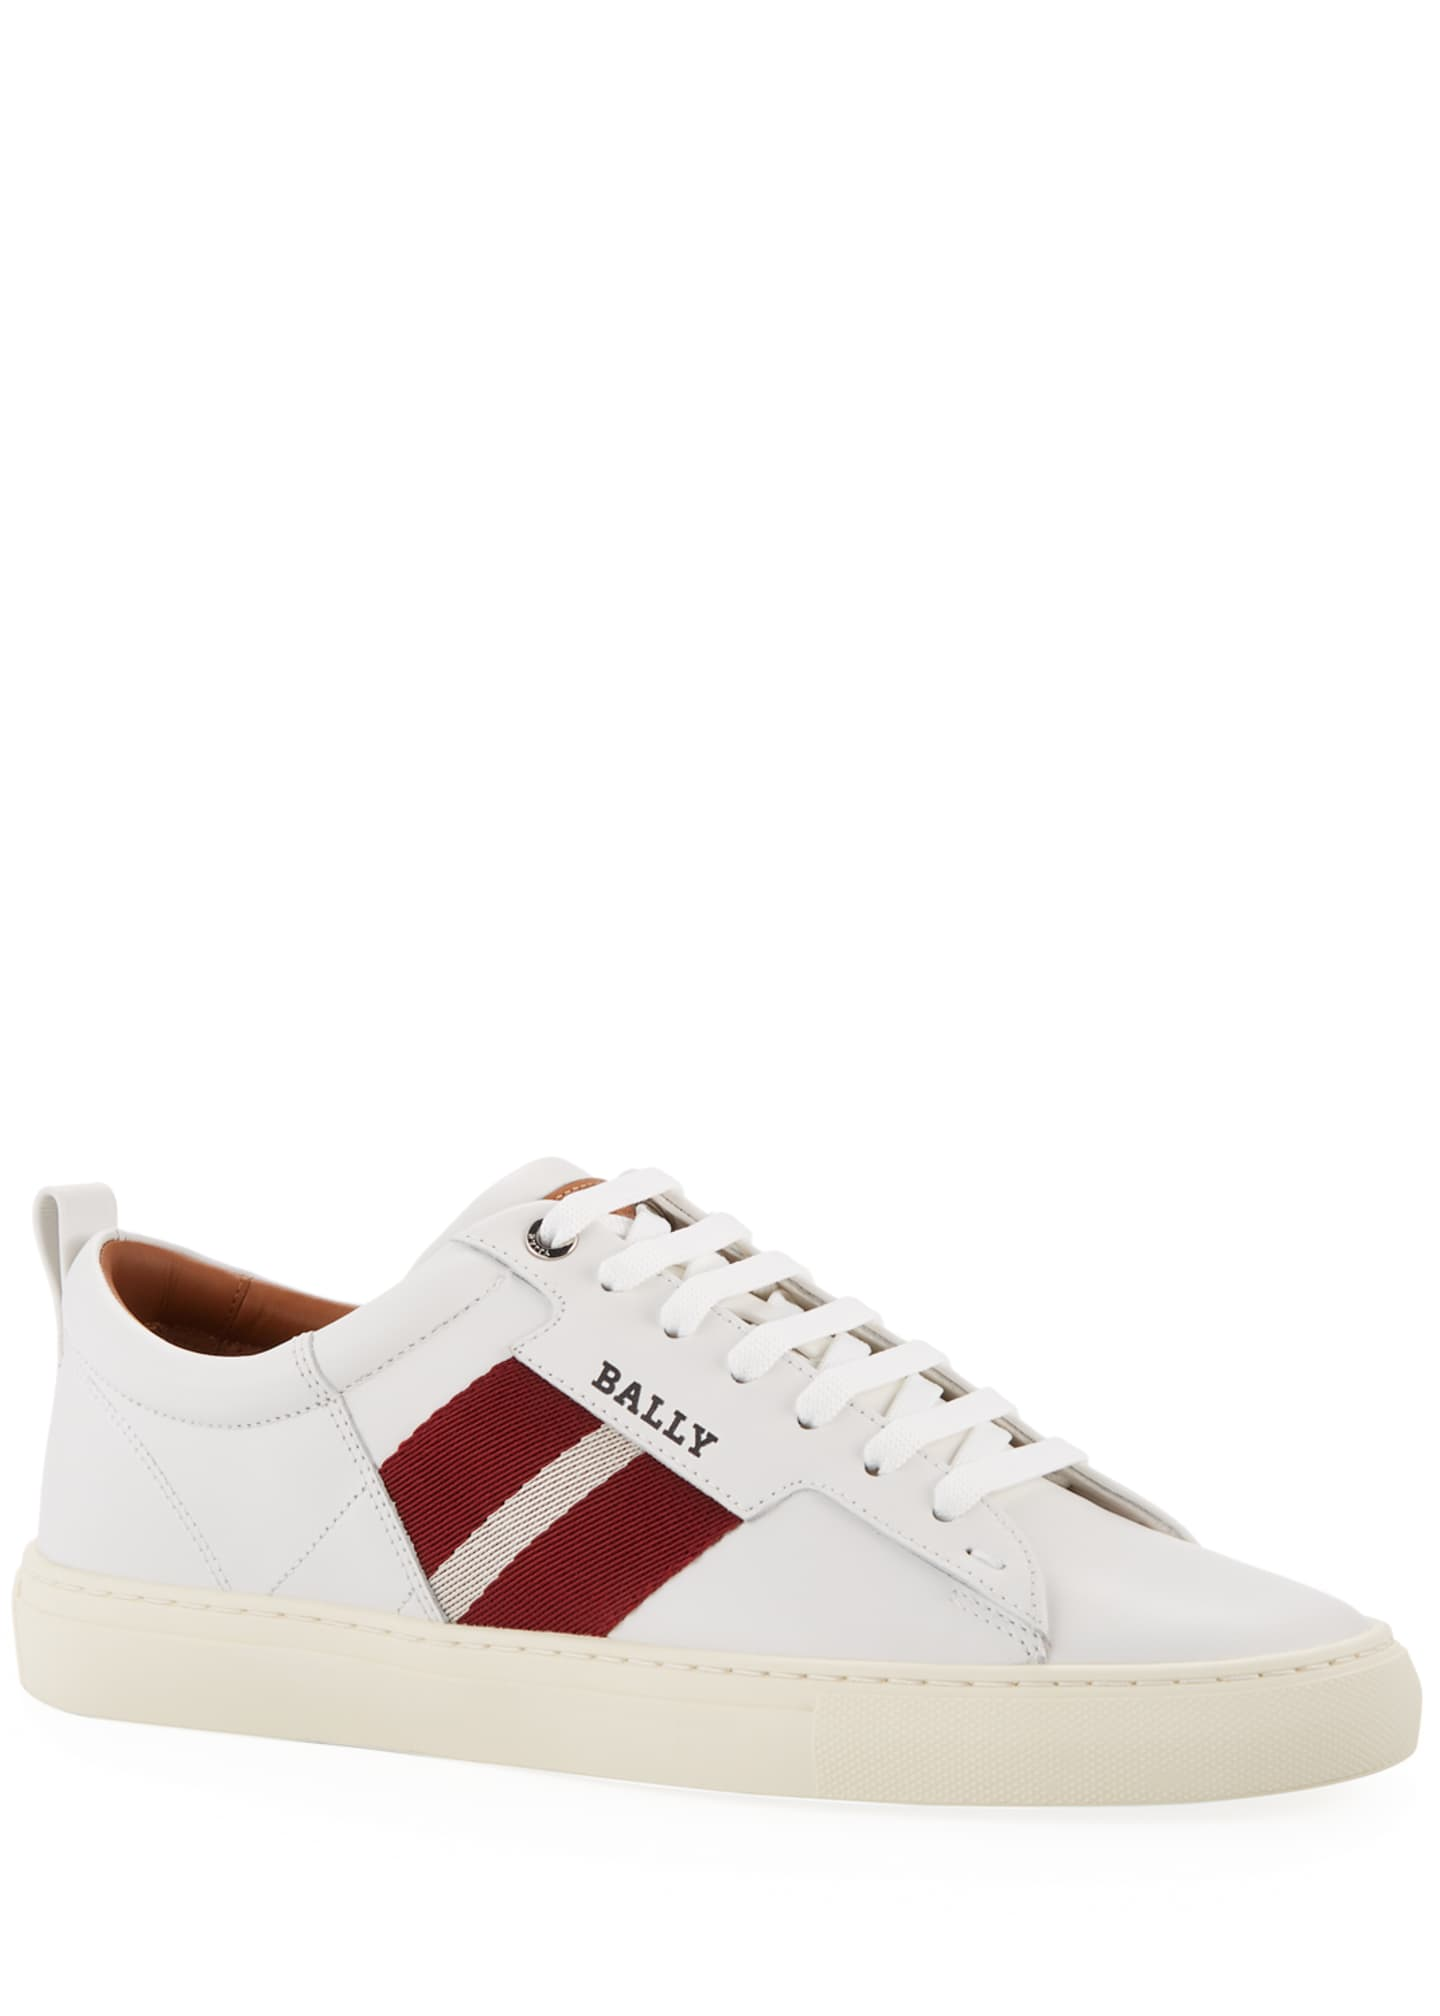 Image 1 of 2: Men's Helvio Leather Low-Top Sneakers